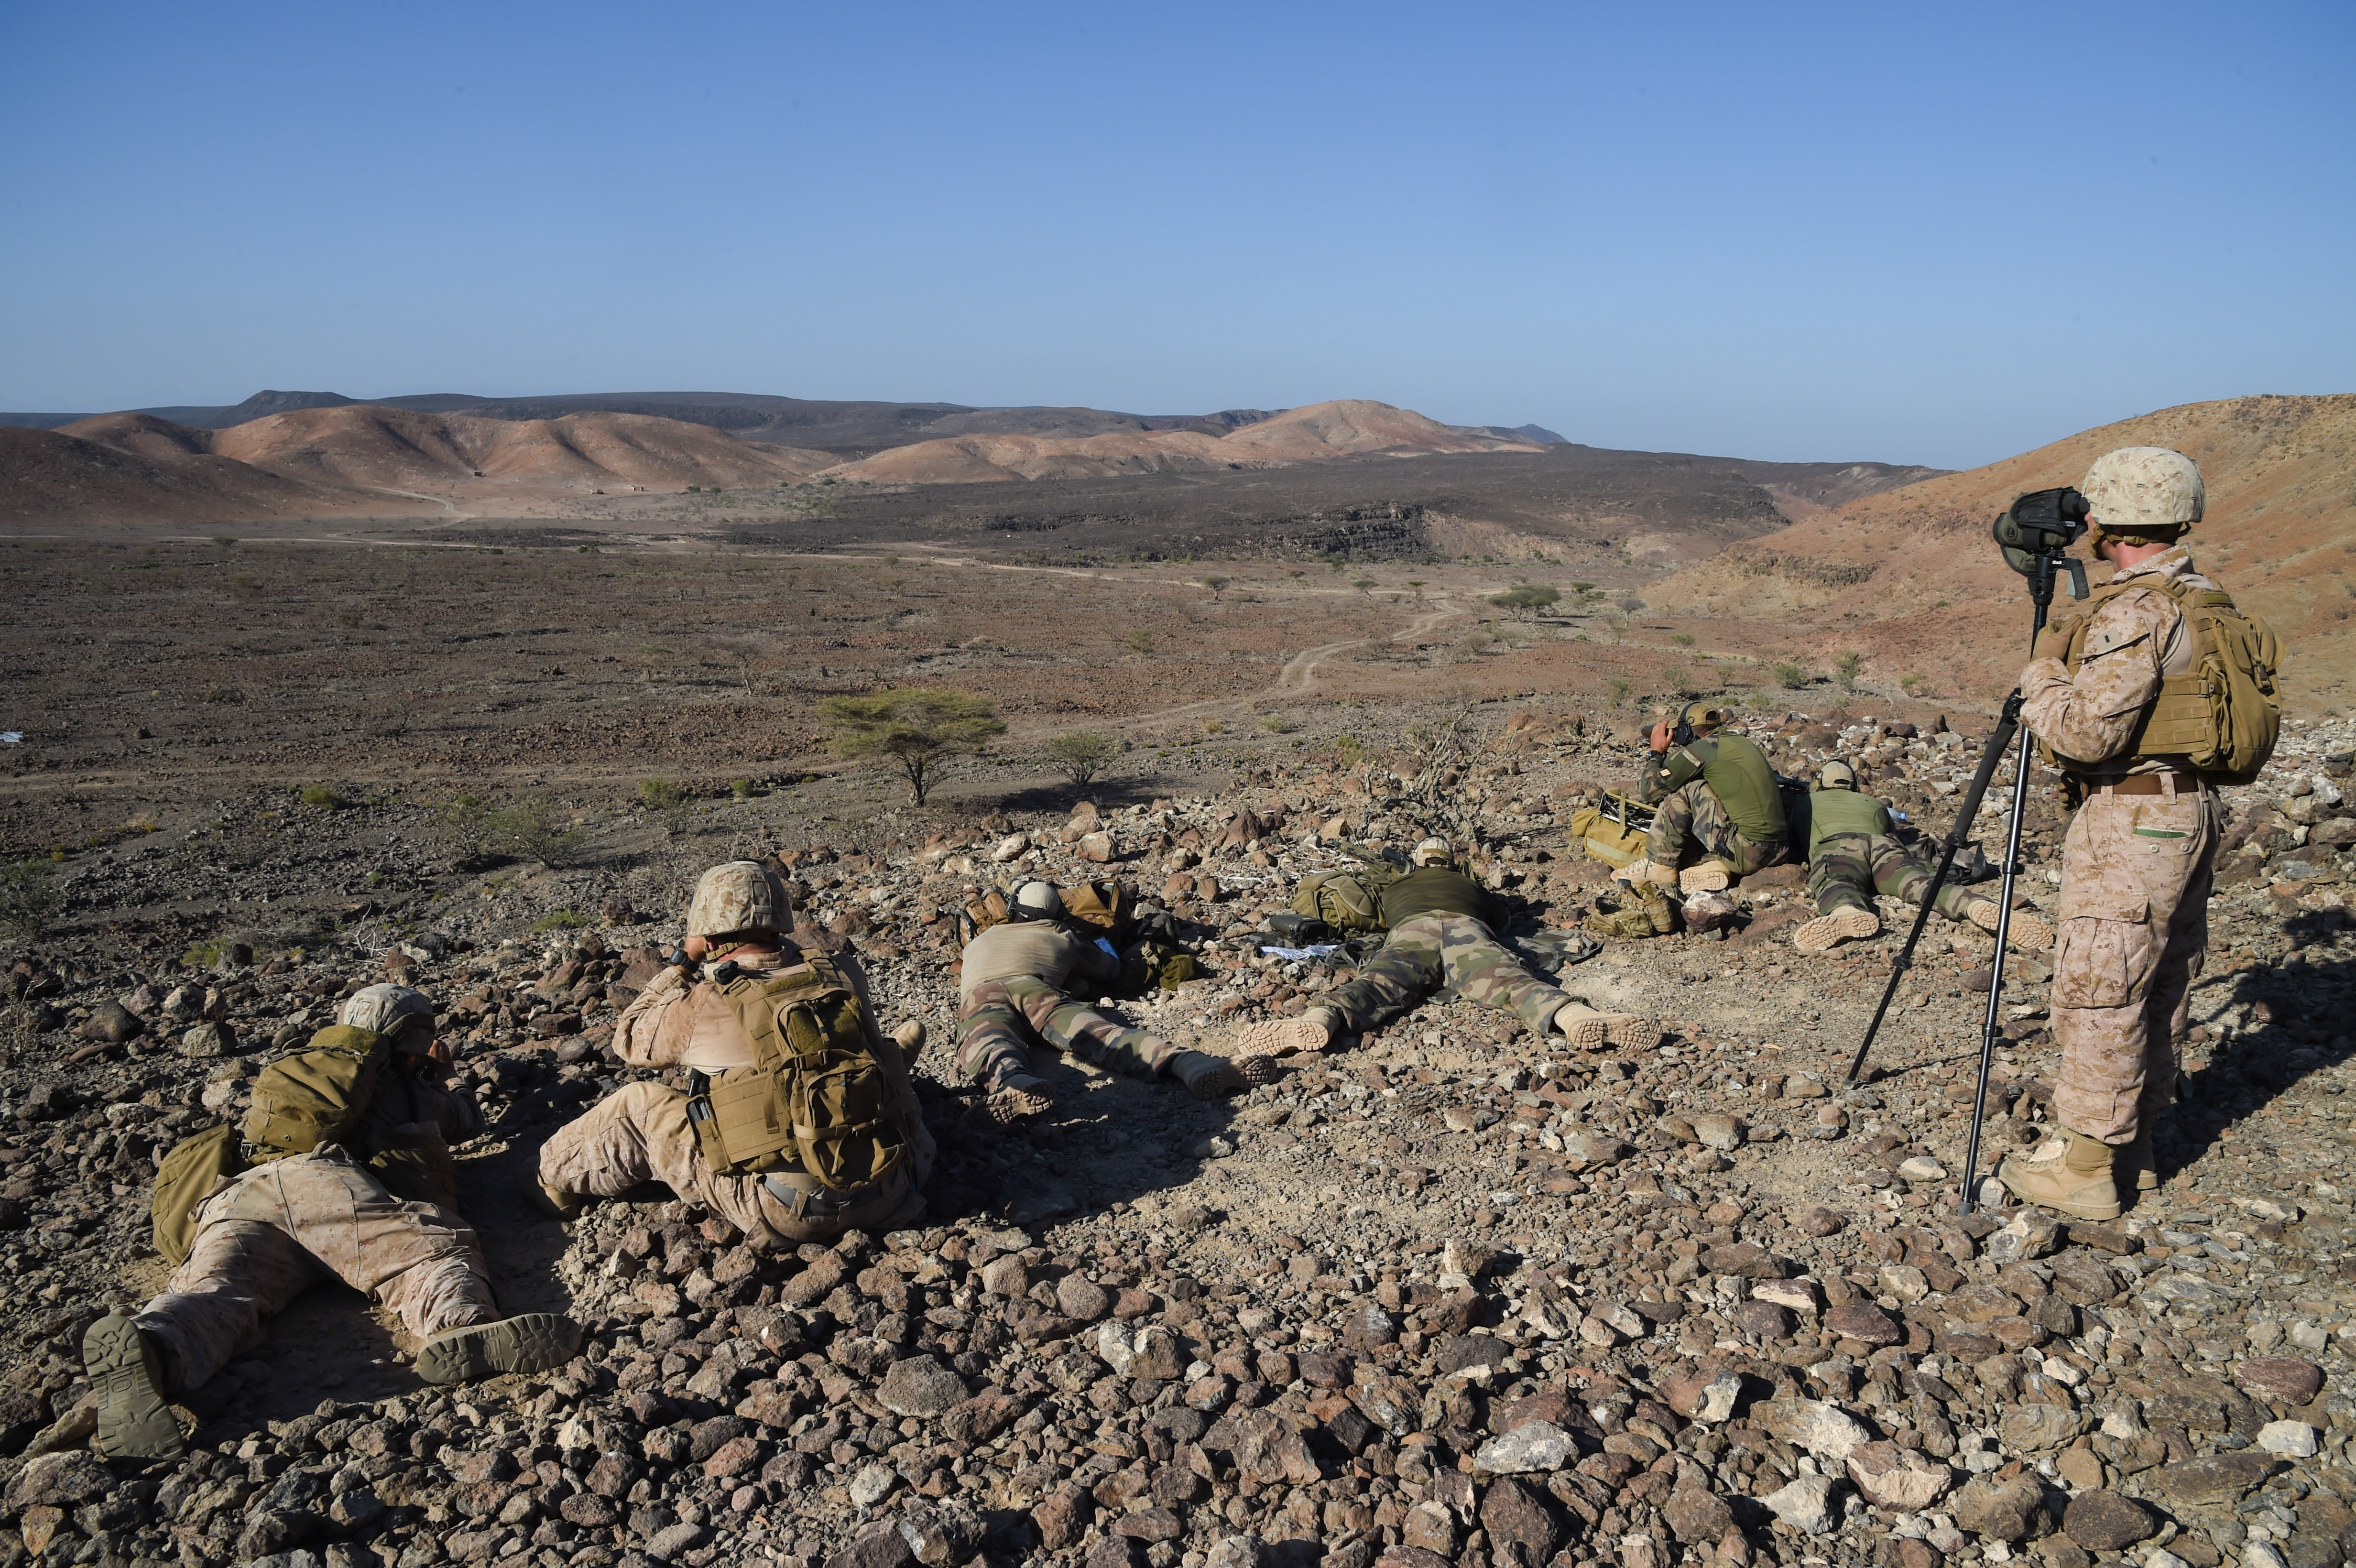 U.S. Marine Corps members with Scout Sniper Platoon, Battalion Landing Team 1st Battalion, 4th Marines, 11th Marine Expeditionary Unit (MEU), focus downrange during exercise Alligator Dagger, Dec. 13, 2016, at Arta Plage, Djibouti. The unknown distance course was part of bilateral training with the 3rd Infantry French Marines Sniper Platoon. The exercise allows opportunities for the 11th MEU to maintain their respective skills and proficiencies. (U.S. Air National Guard photo by Staff Sgt. Penny Snoozy)